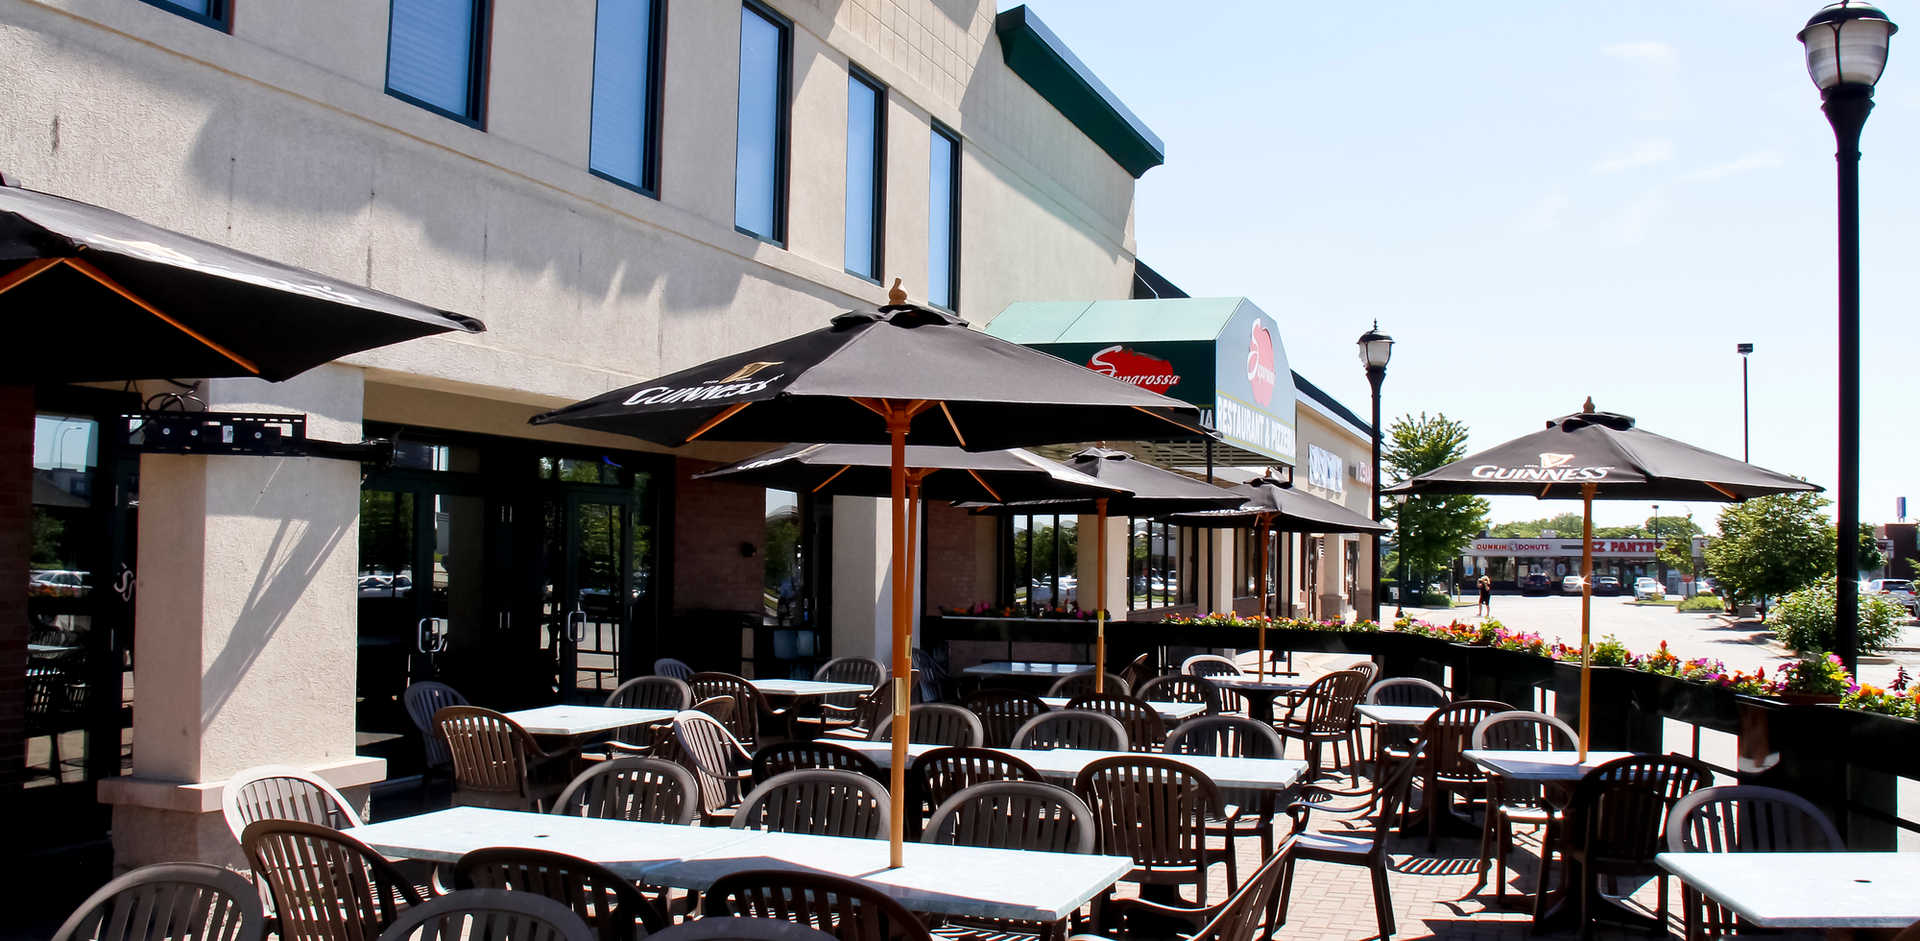 Real Time Sports Bar and Grill Patio view 4